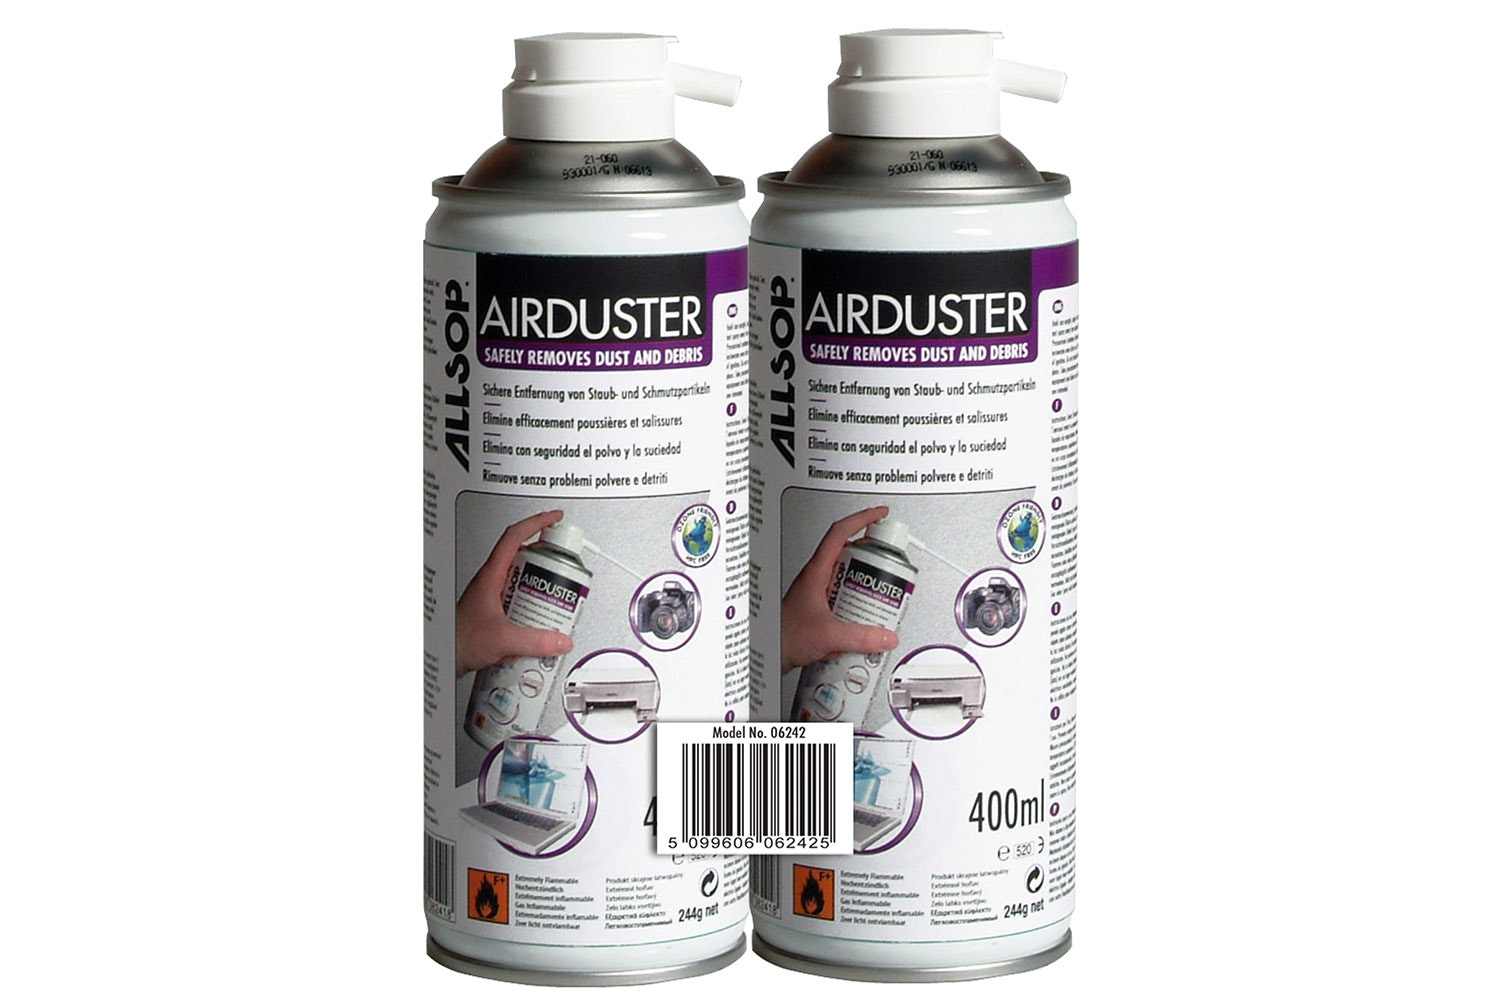 Allsop 400ml Airduster Twin Pack